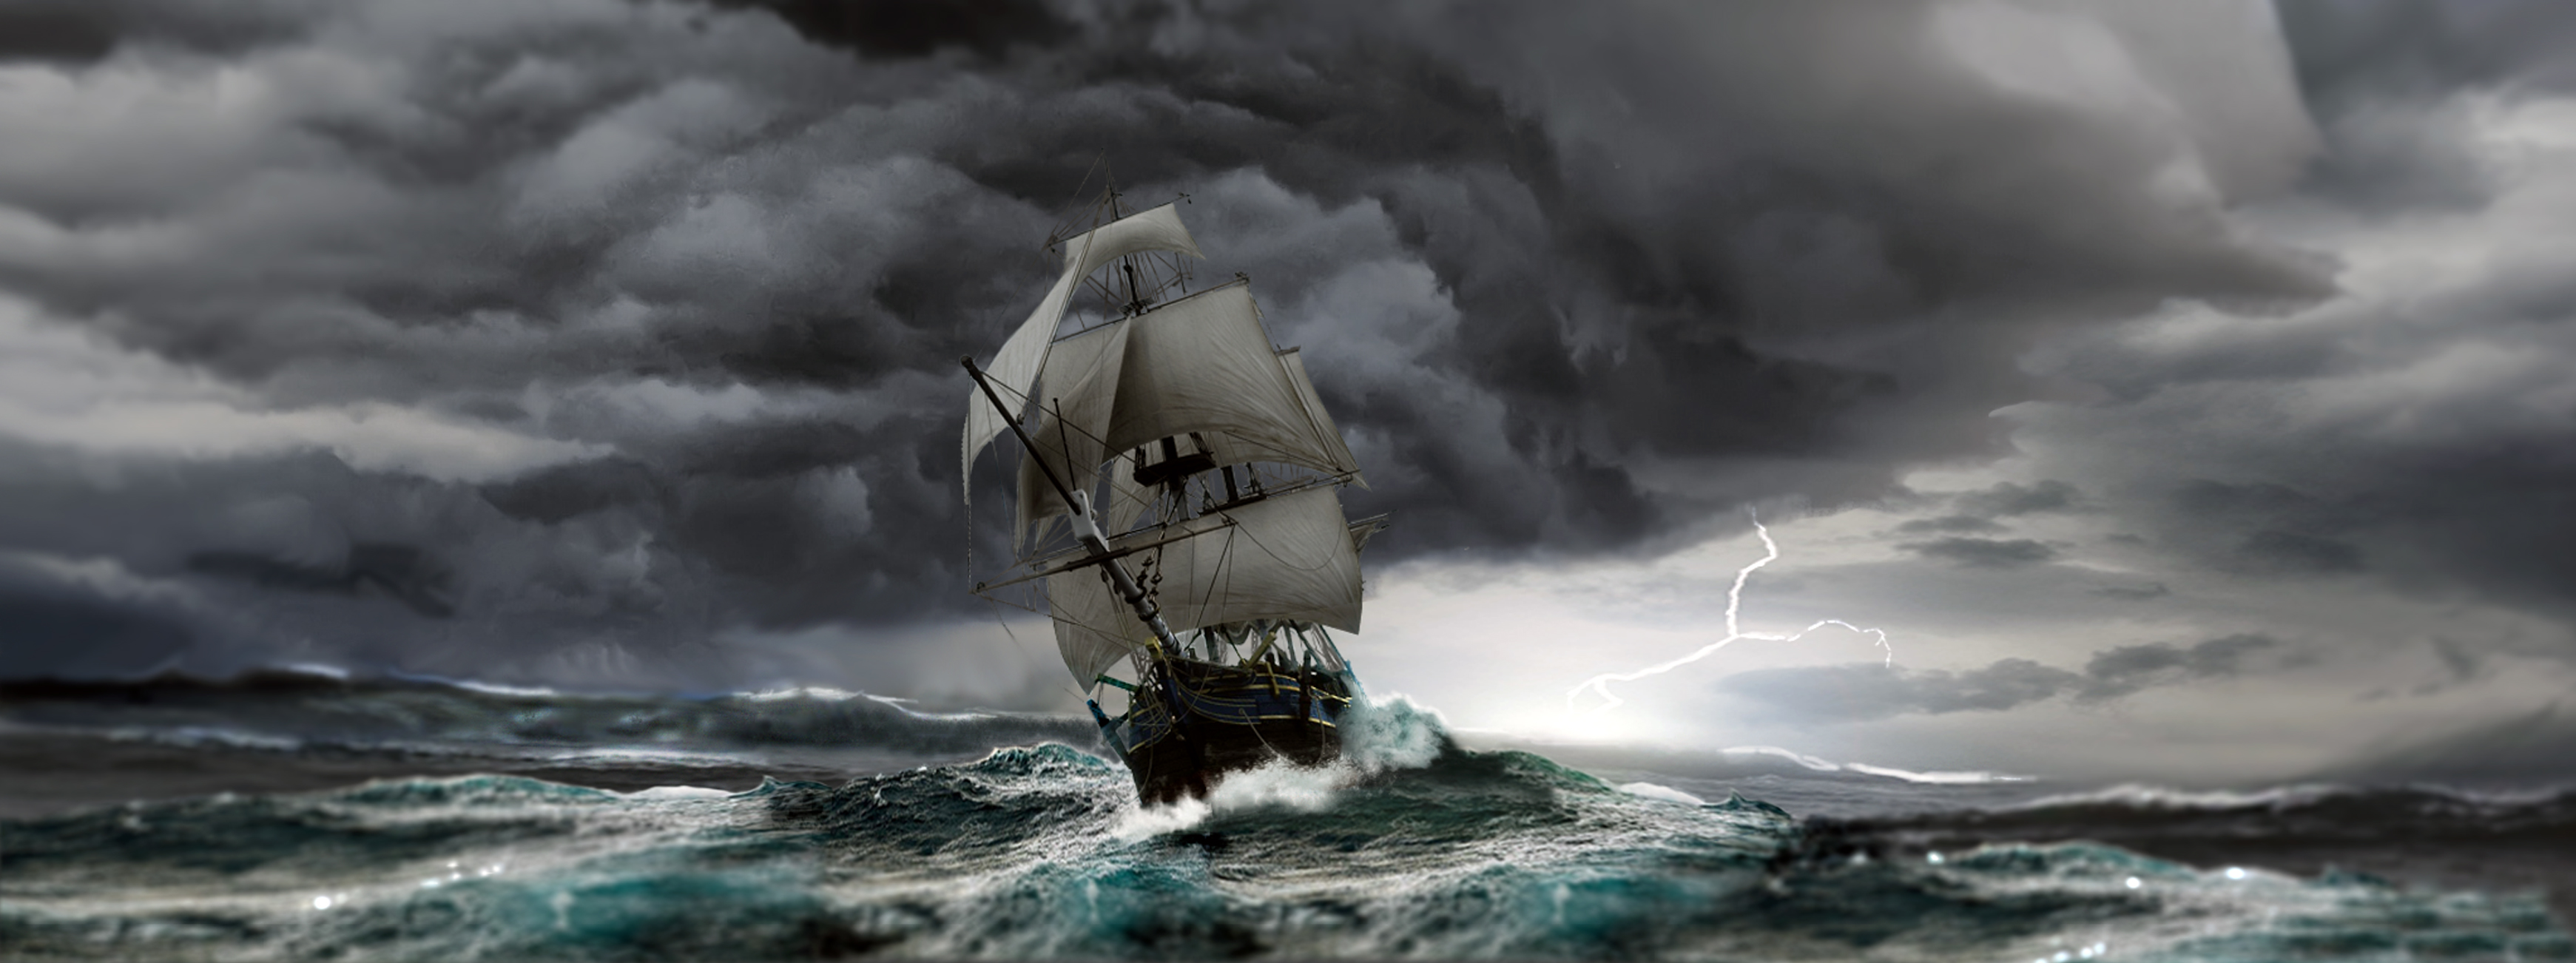 a creative writing essay on the unexpected horizons of the sea storm A creative writing essay on the unexpected horizons of the sea storm creative writing: unexpected horizons wow i love going deep sea fishing on our boat i was excited when my dad had asked me if i wanted to go this weekend.